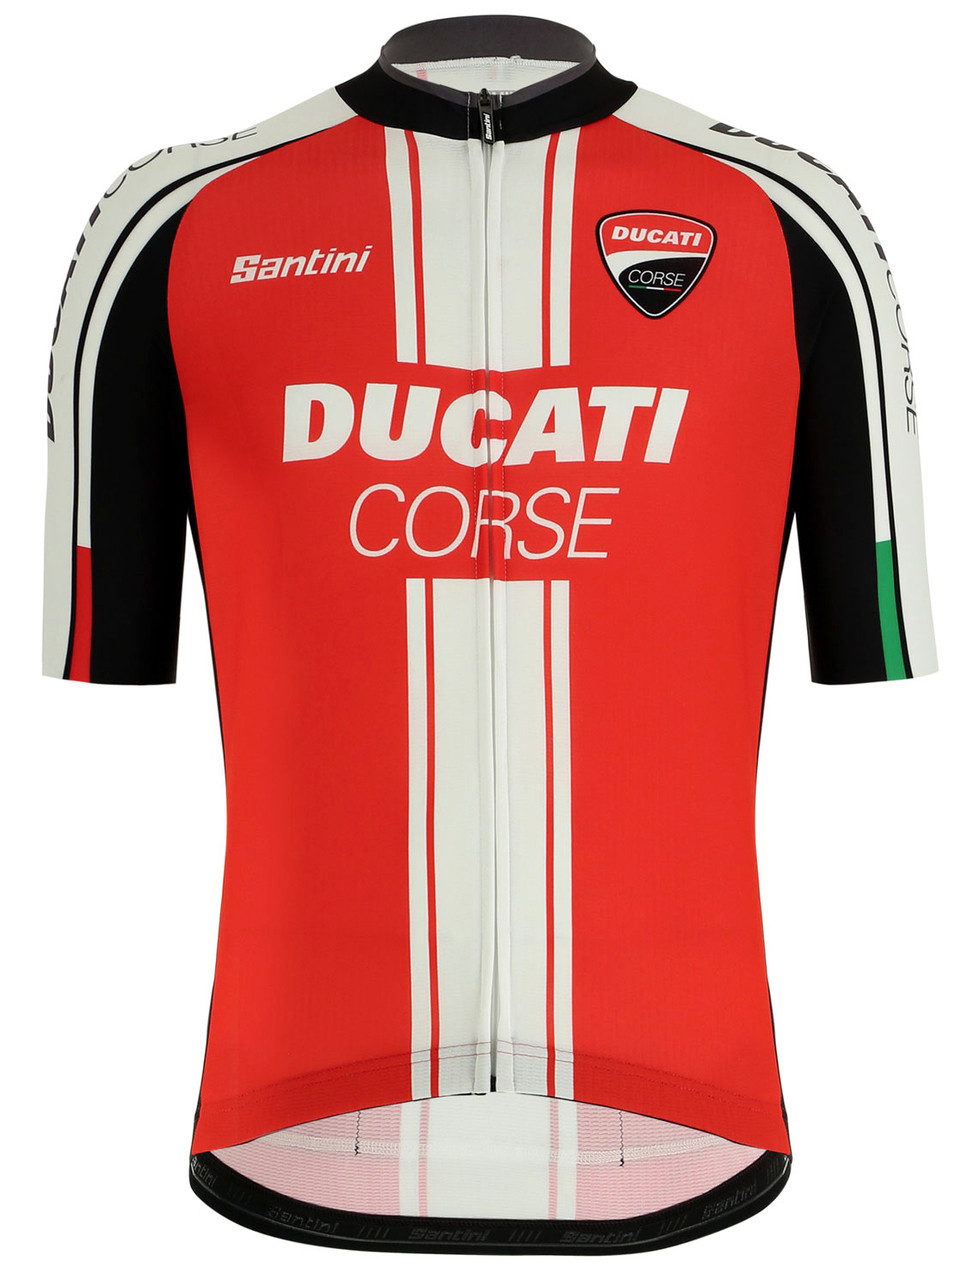 2019 Ducati Corse Jersey Front